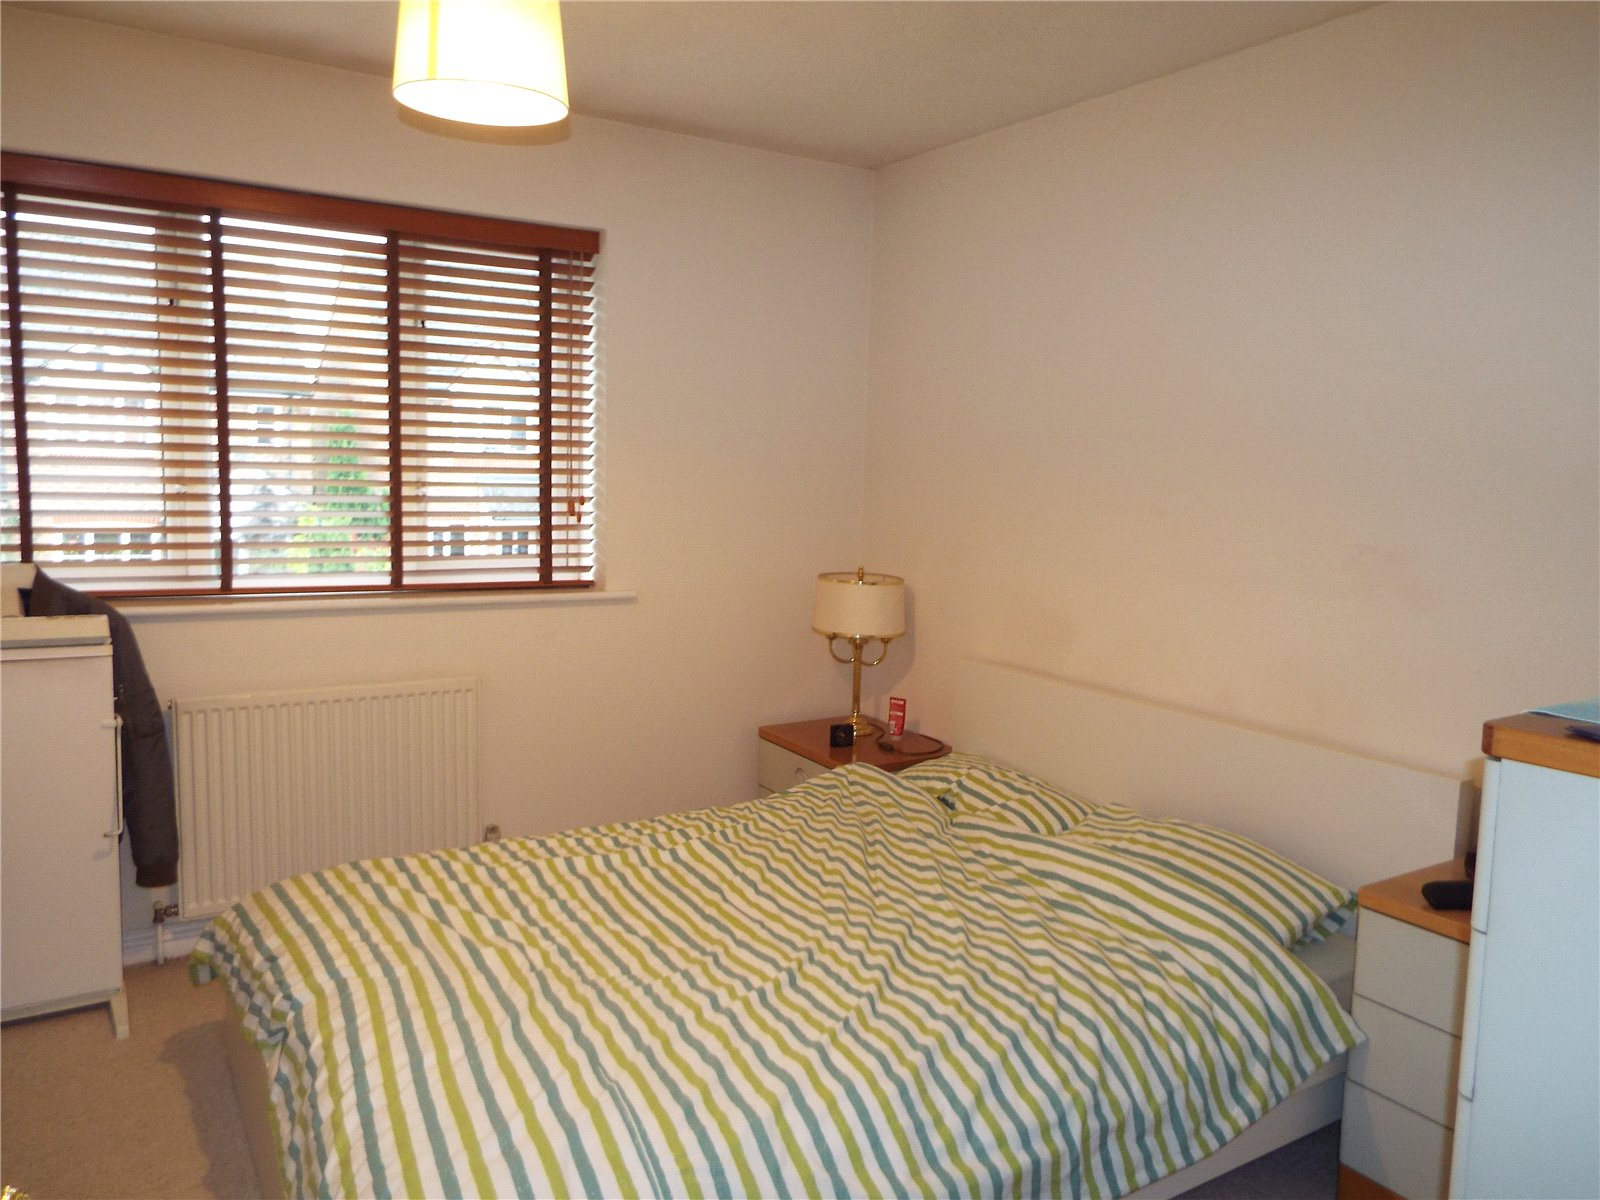 2 bed house to rent in New Southgate, N11 3PY  - Property Image 5